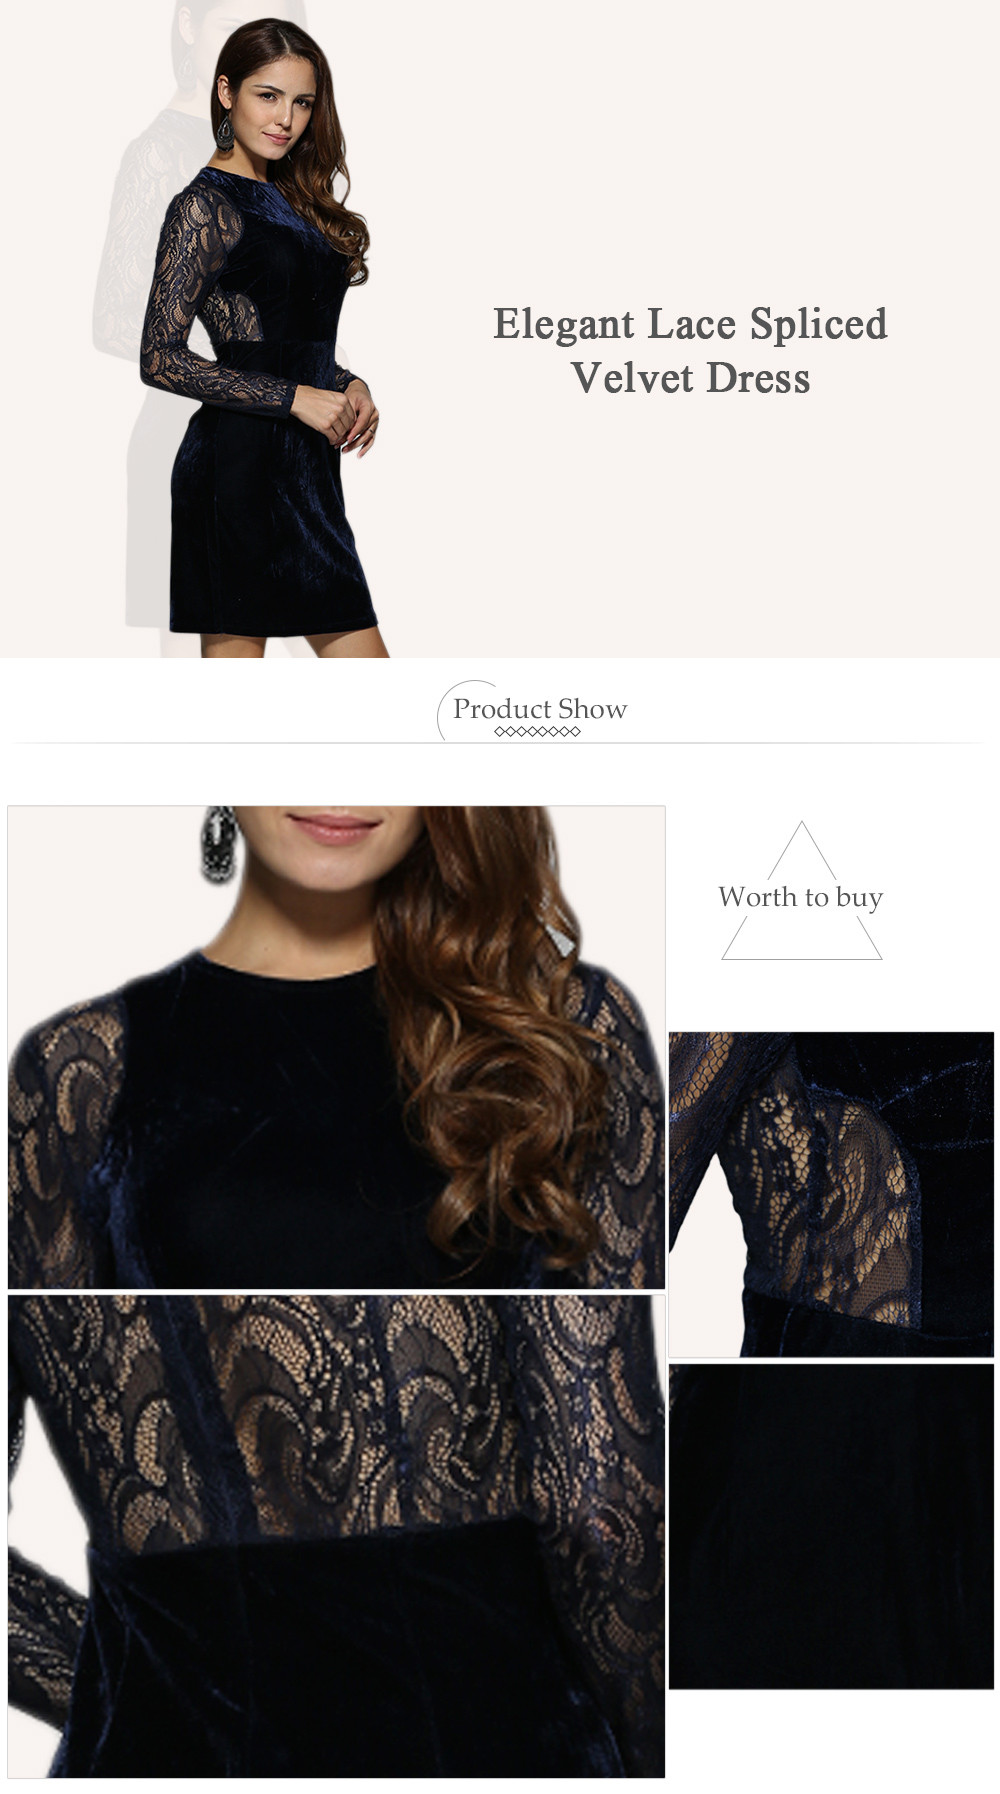 Elegant Round Collar Lace Spliced Sheath Women Velvet Dress